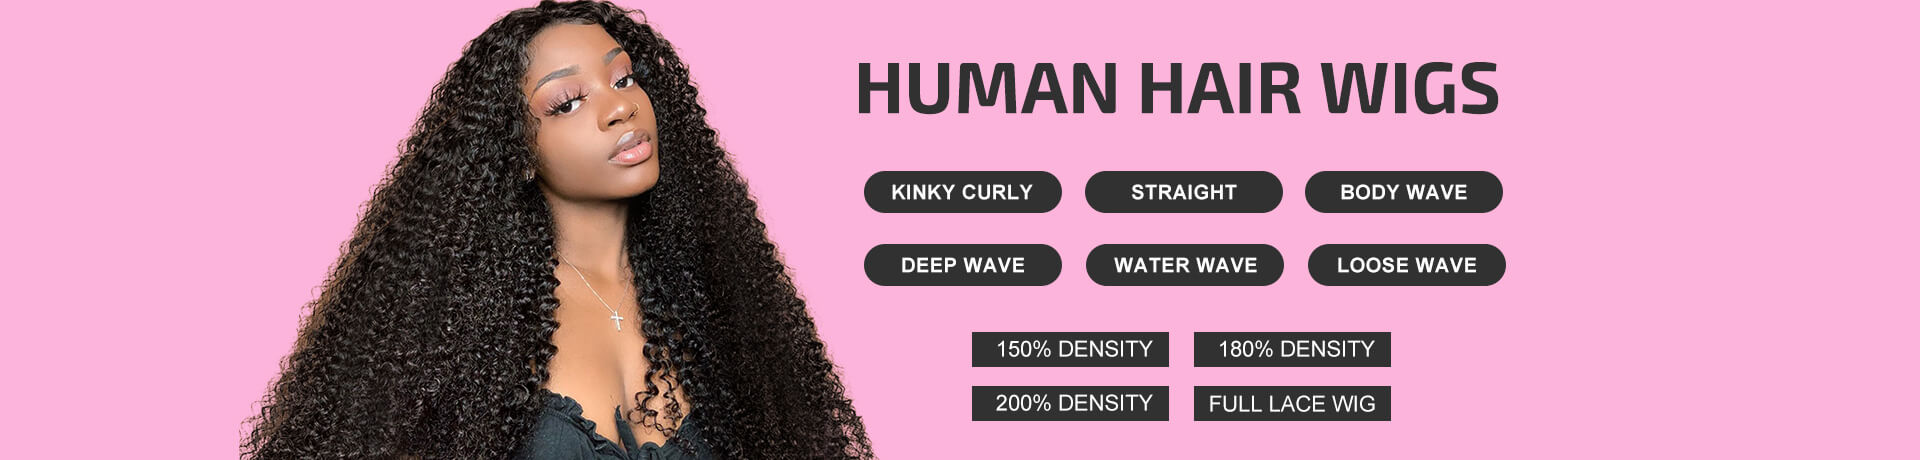 Shop Cheap Human Hair Wigs Online, Human Hair Lace Front Wigs, 100 Human Hair Wigs At a Affordable Price. 2019 New, 4000+ Styles, 80% Off, Free Shipping!